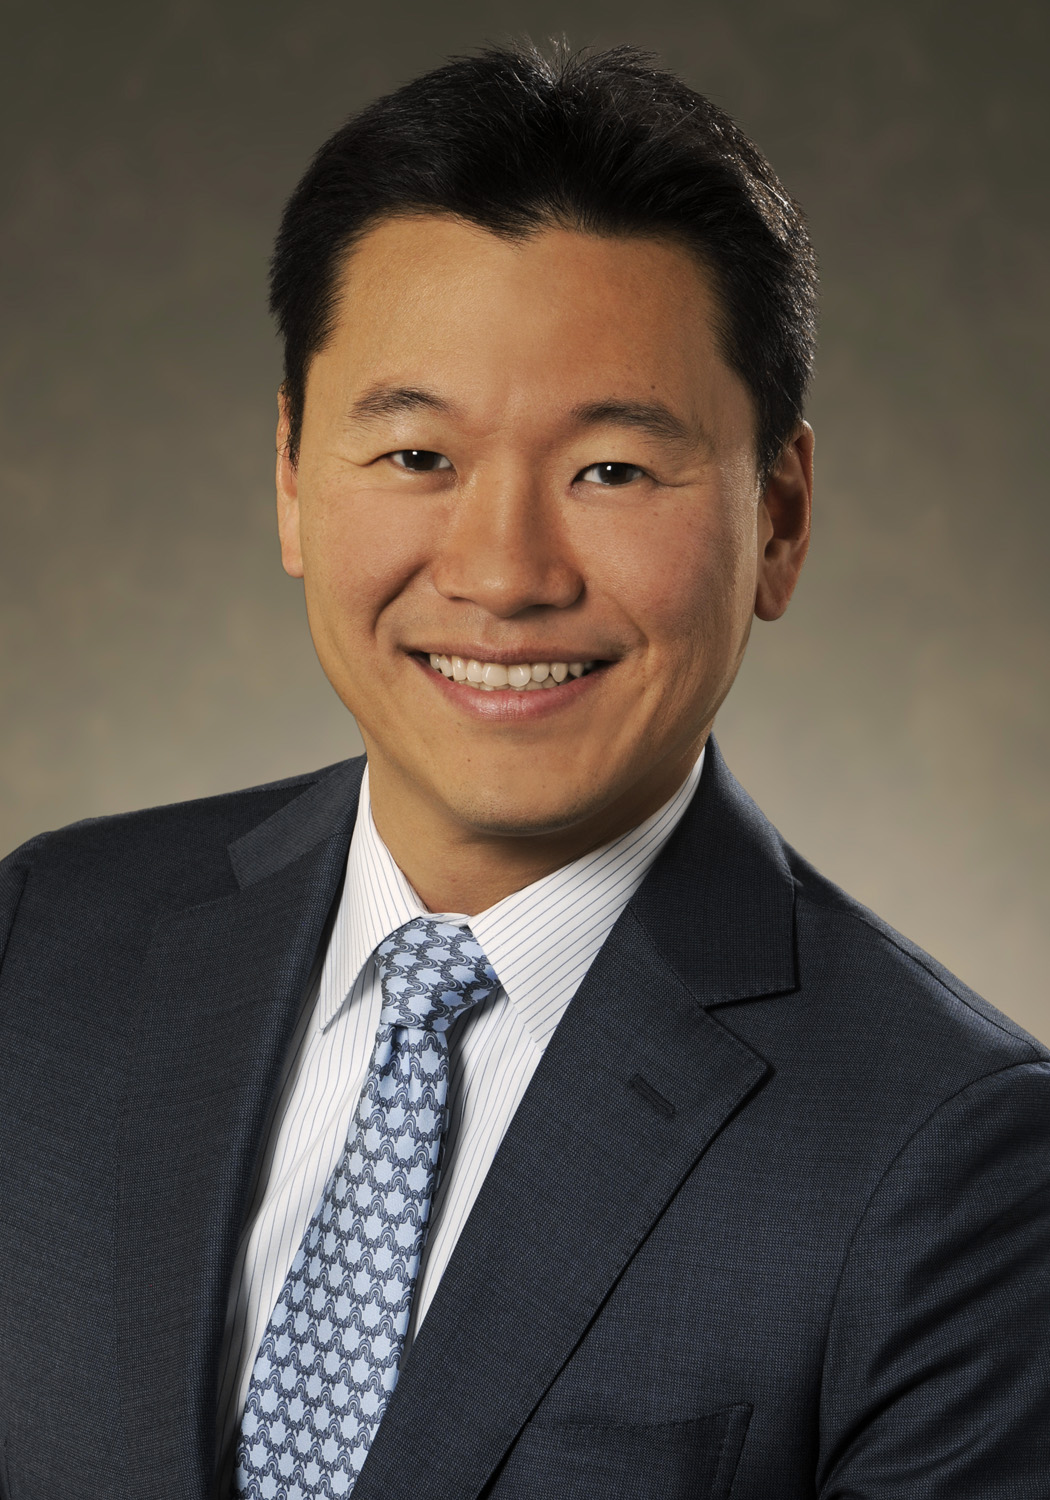 Dr. Woosik Chung, MD